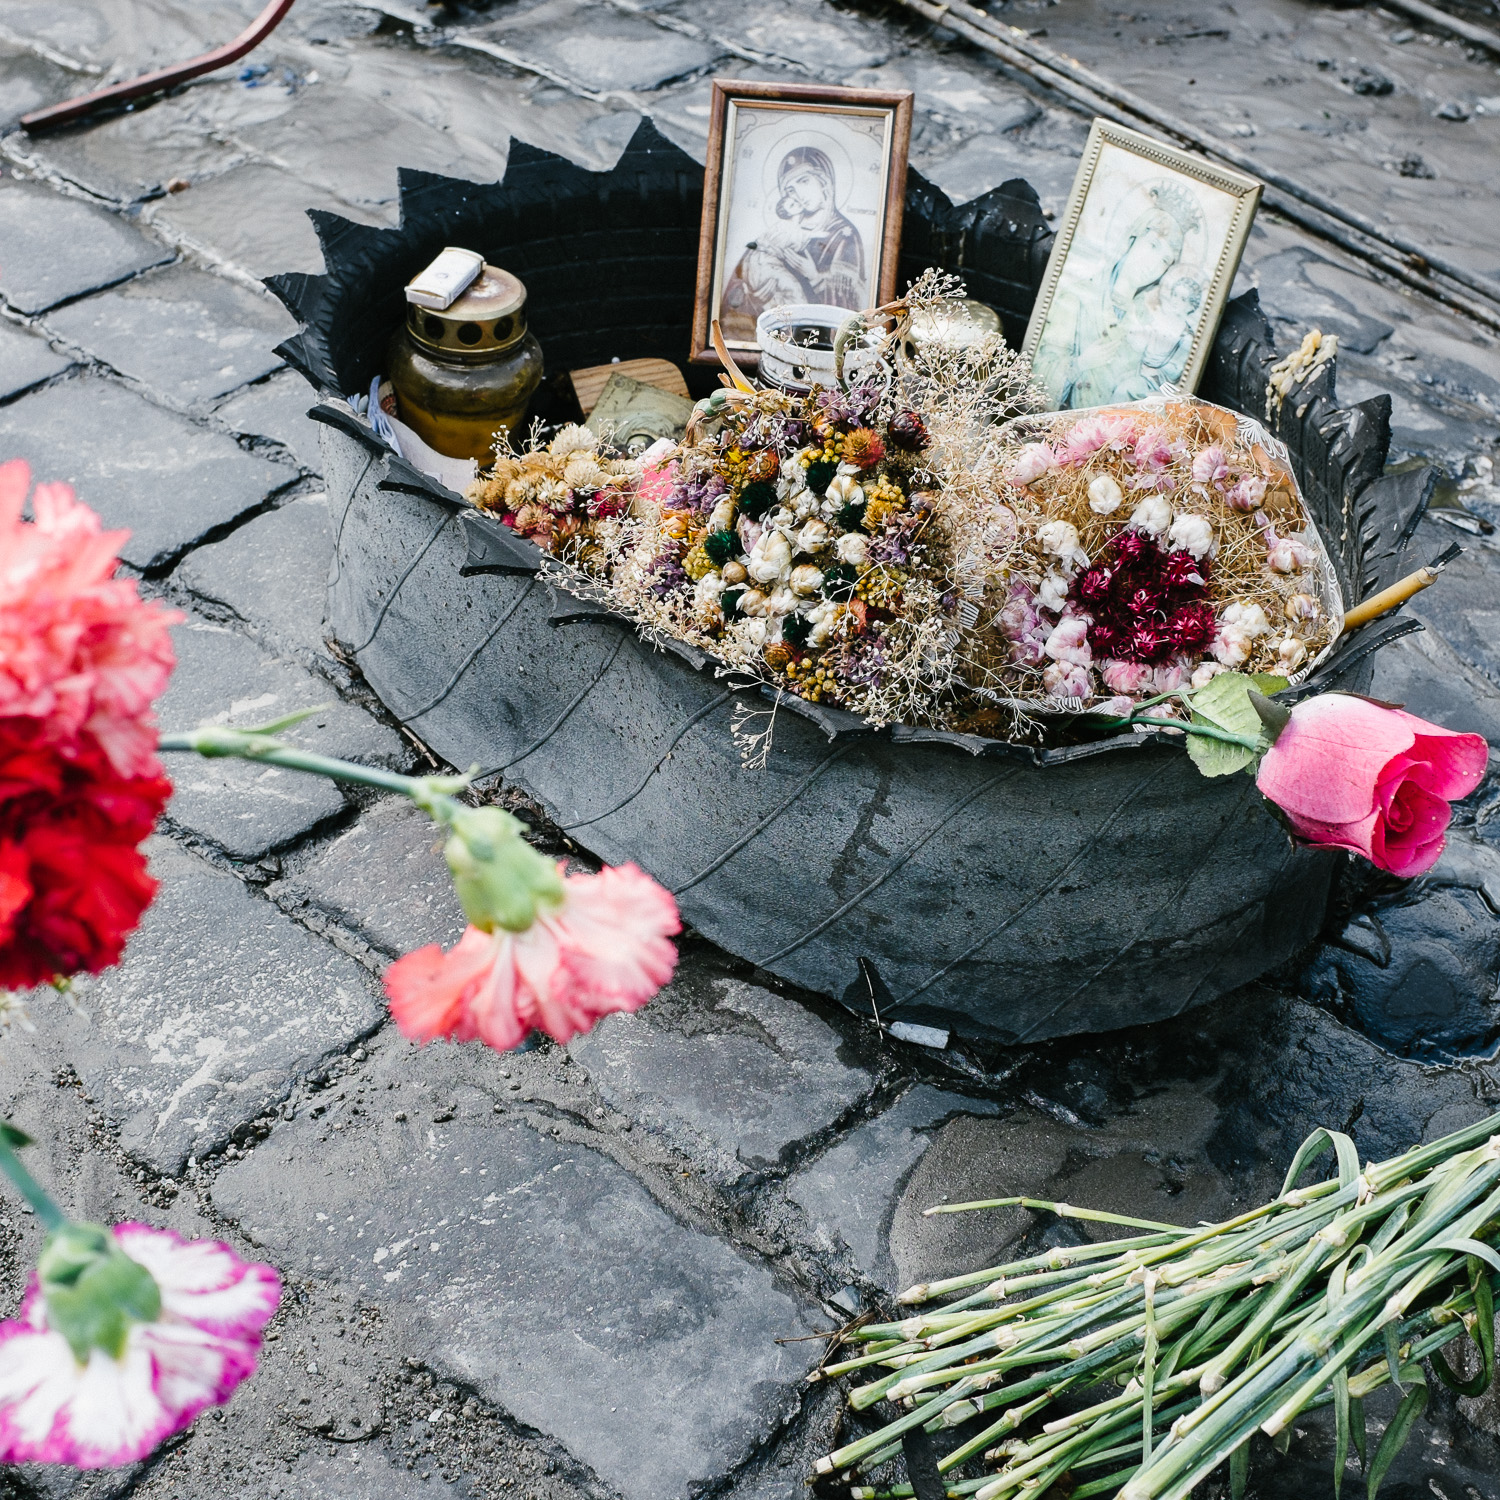 A memorial made from a tire on Kiev's Hrushevskoho Street, off Independence Square.